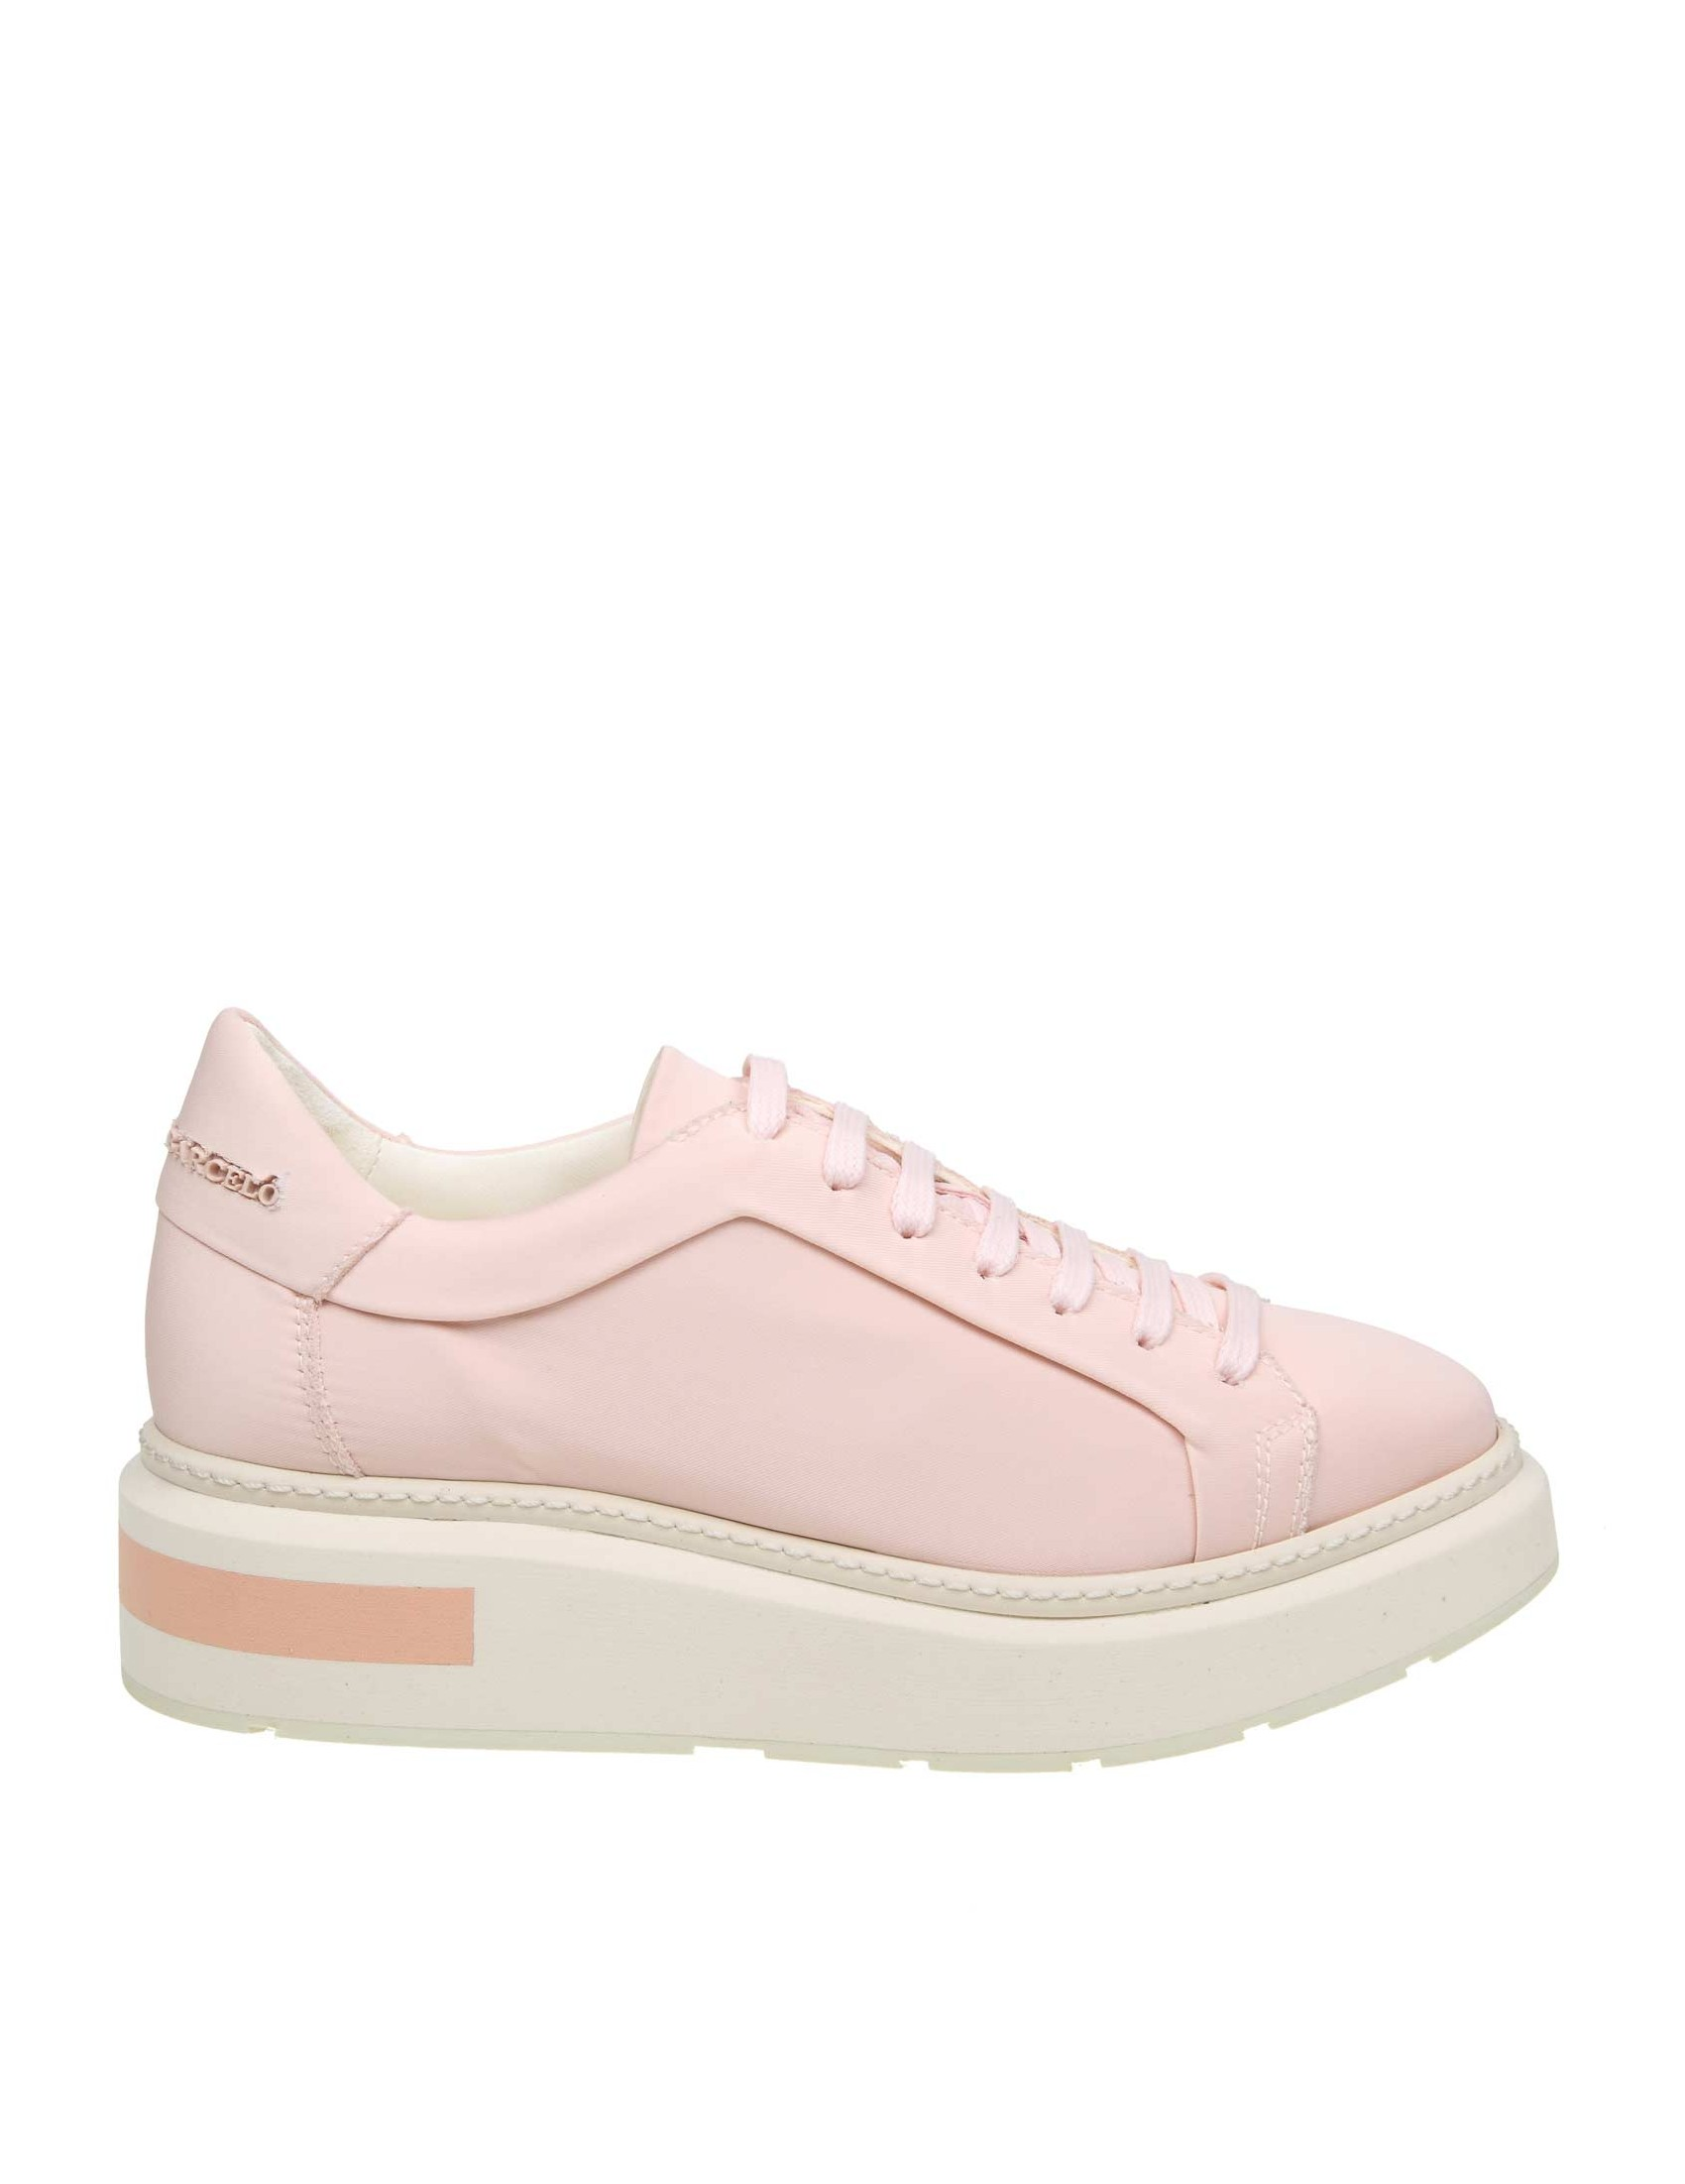 premium selection 2cd26 59f48 MANUEL BARCELO 'SNEAKERS IN FABRIC COLOR PINK